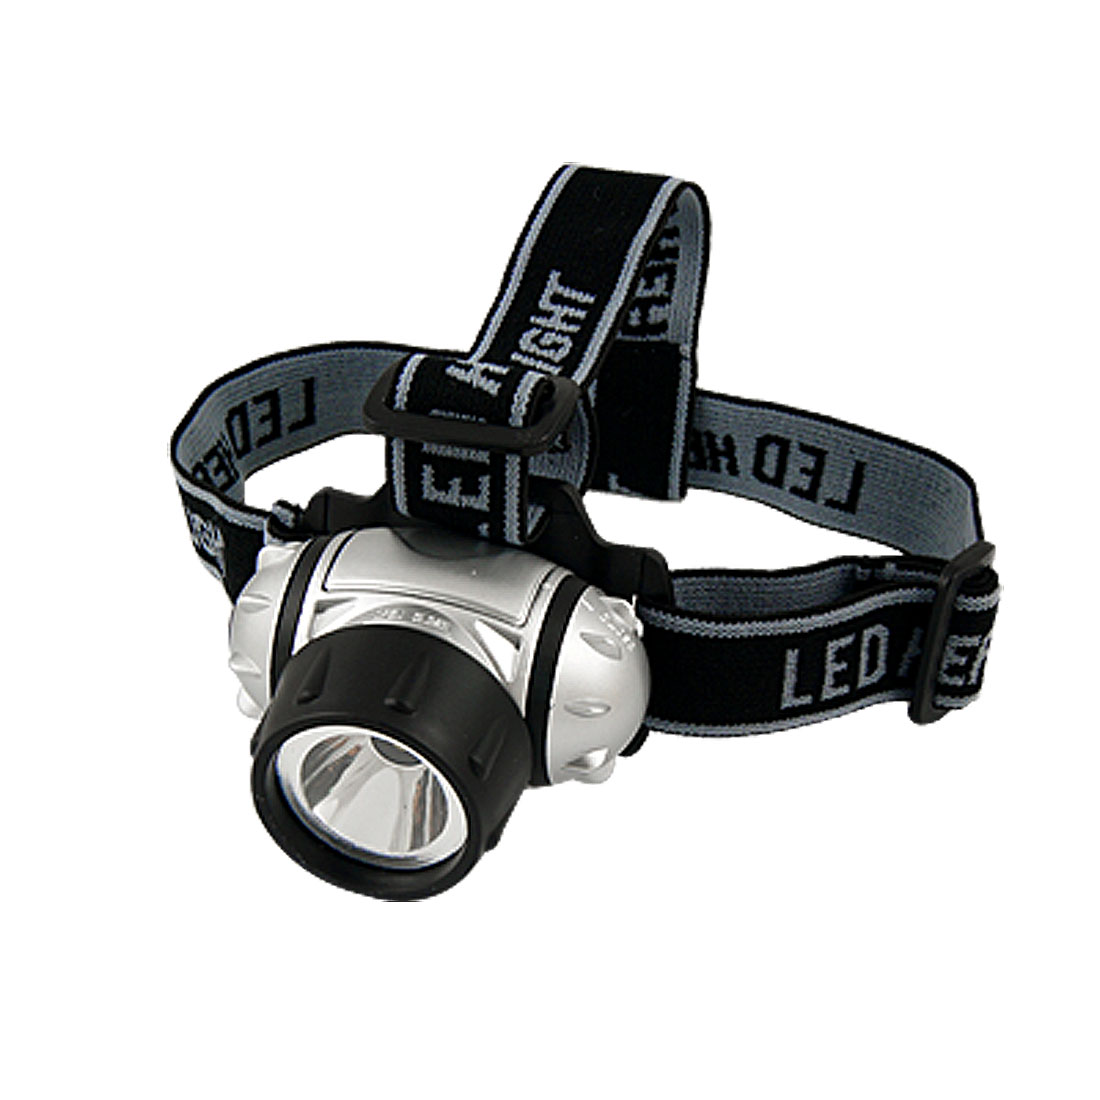 Elastic Adjustable Strap 3 Mode 1W LED Silver Tone Black Head Lamp Light